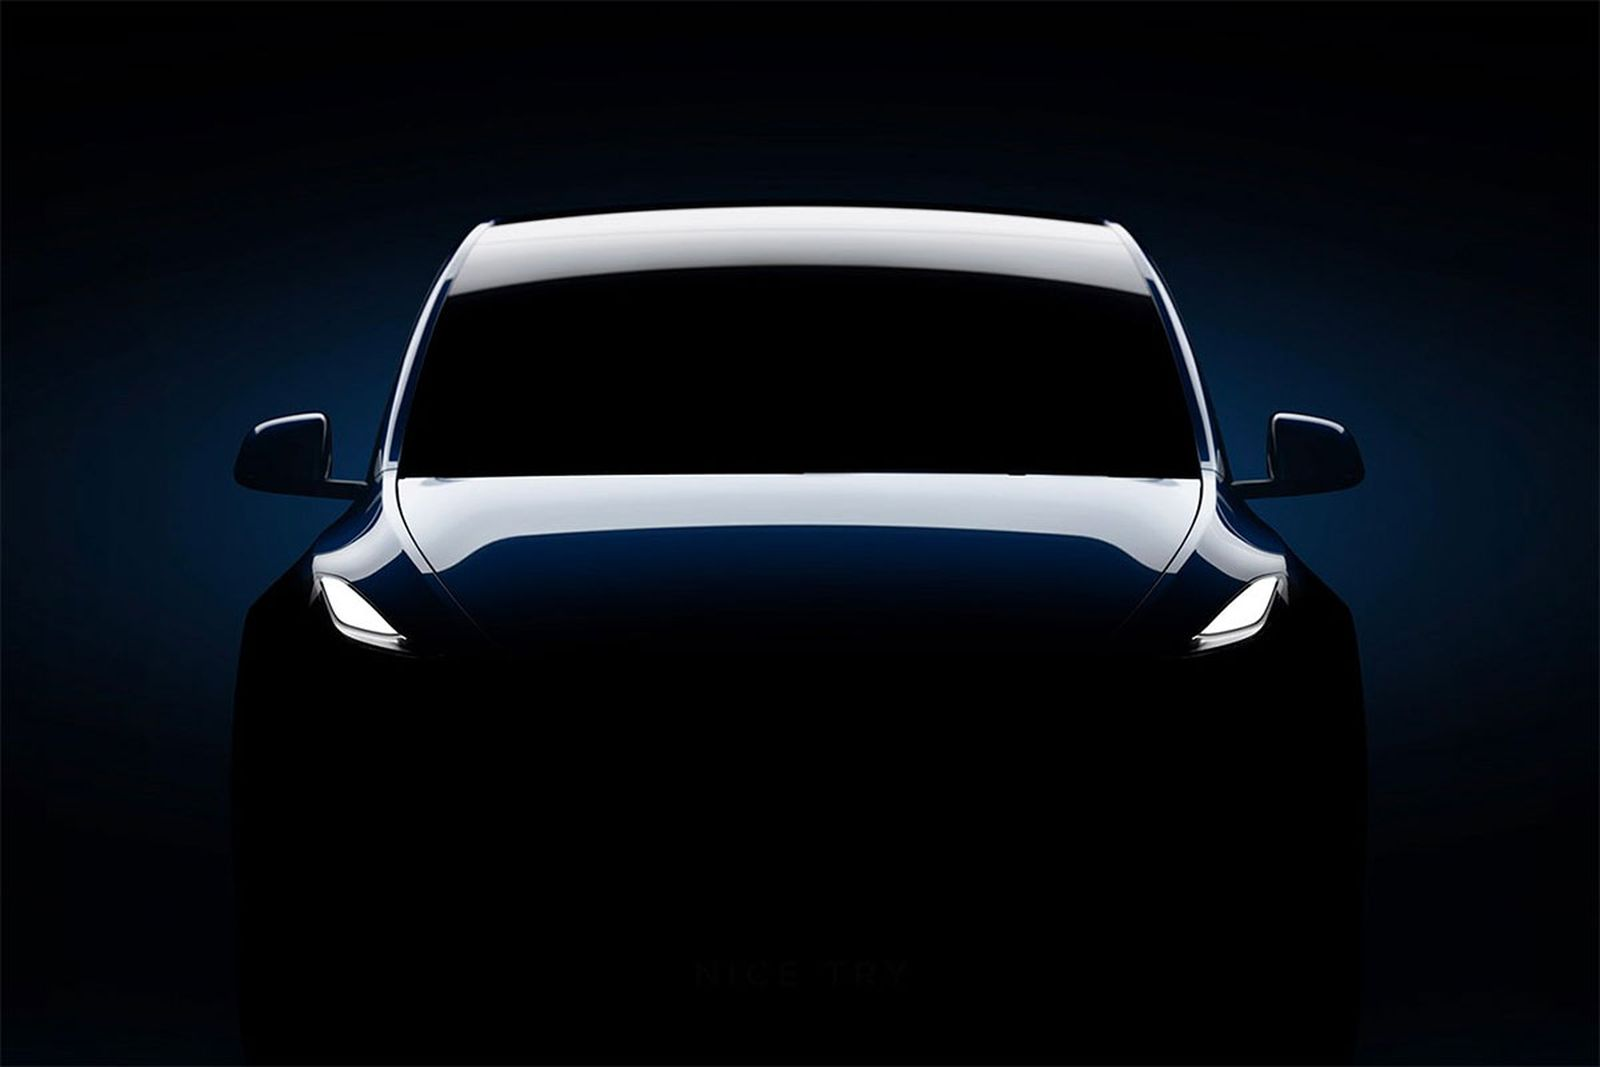 find hidden message teslas model y teaser Elon Musk Tesla Model Y